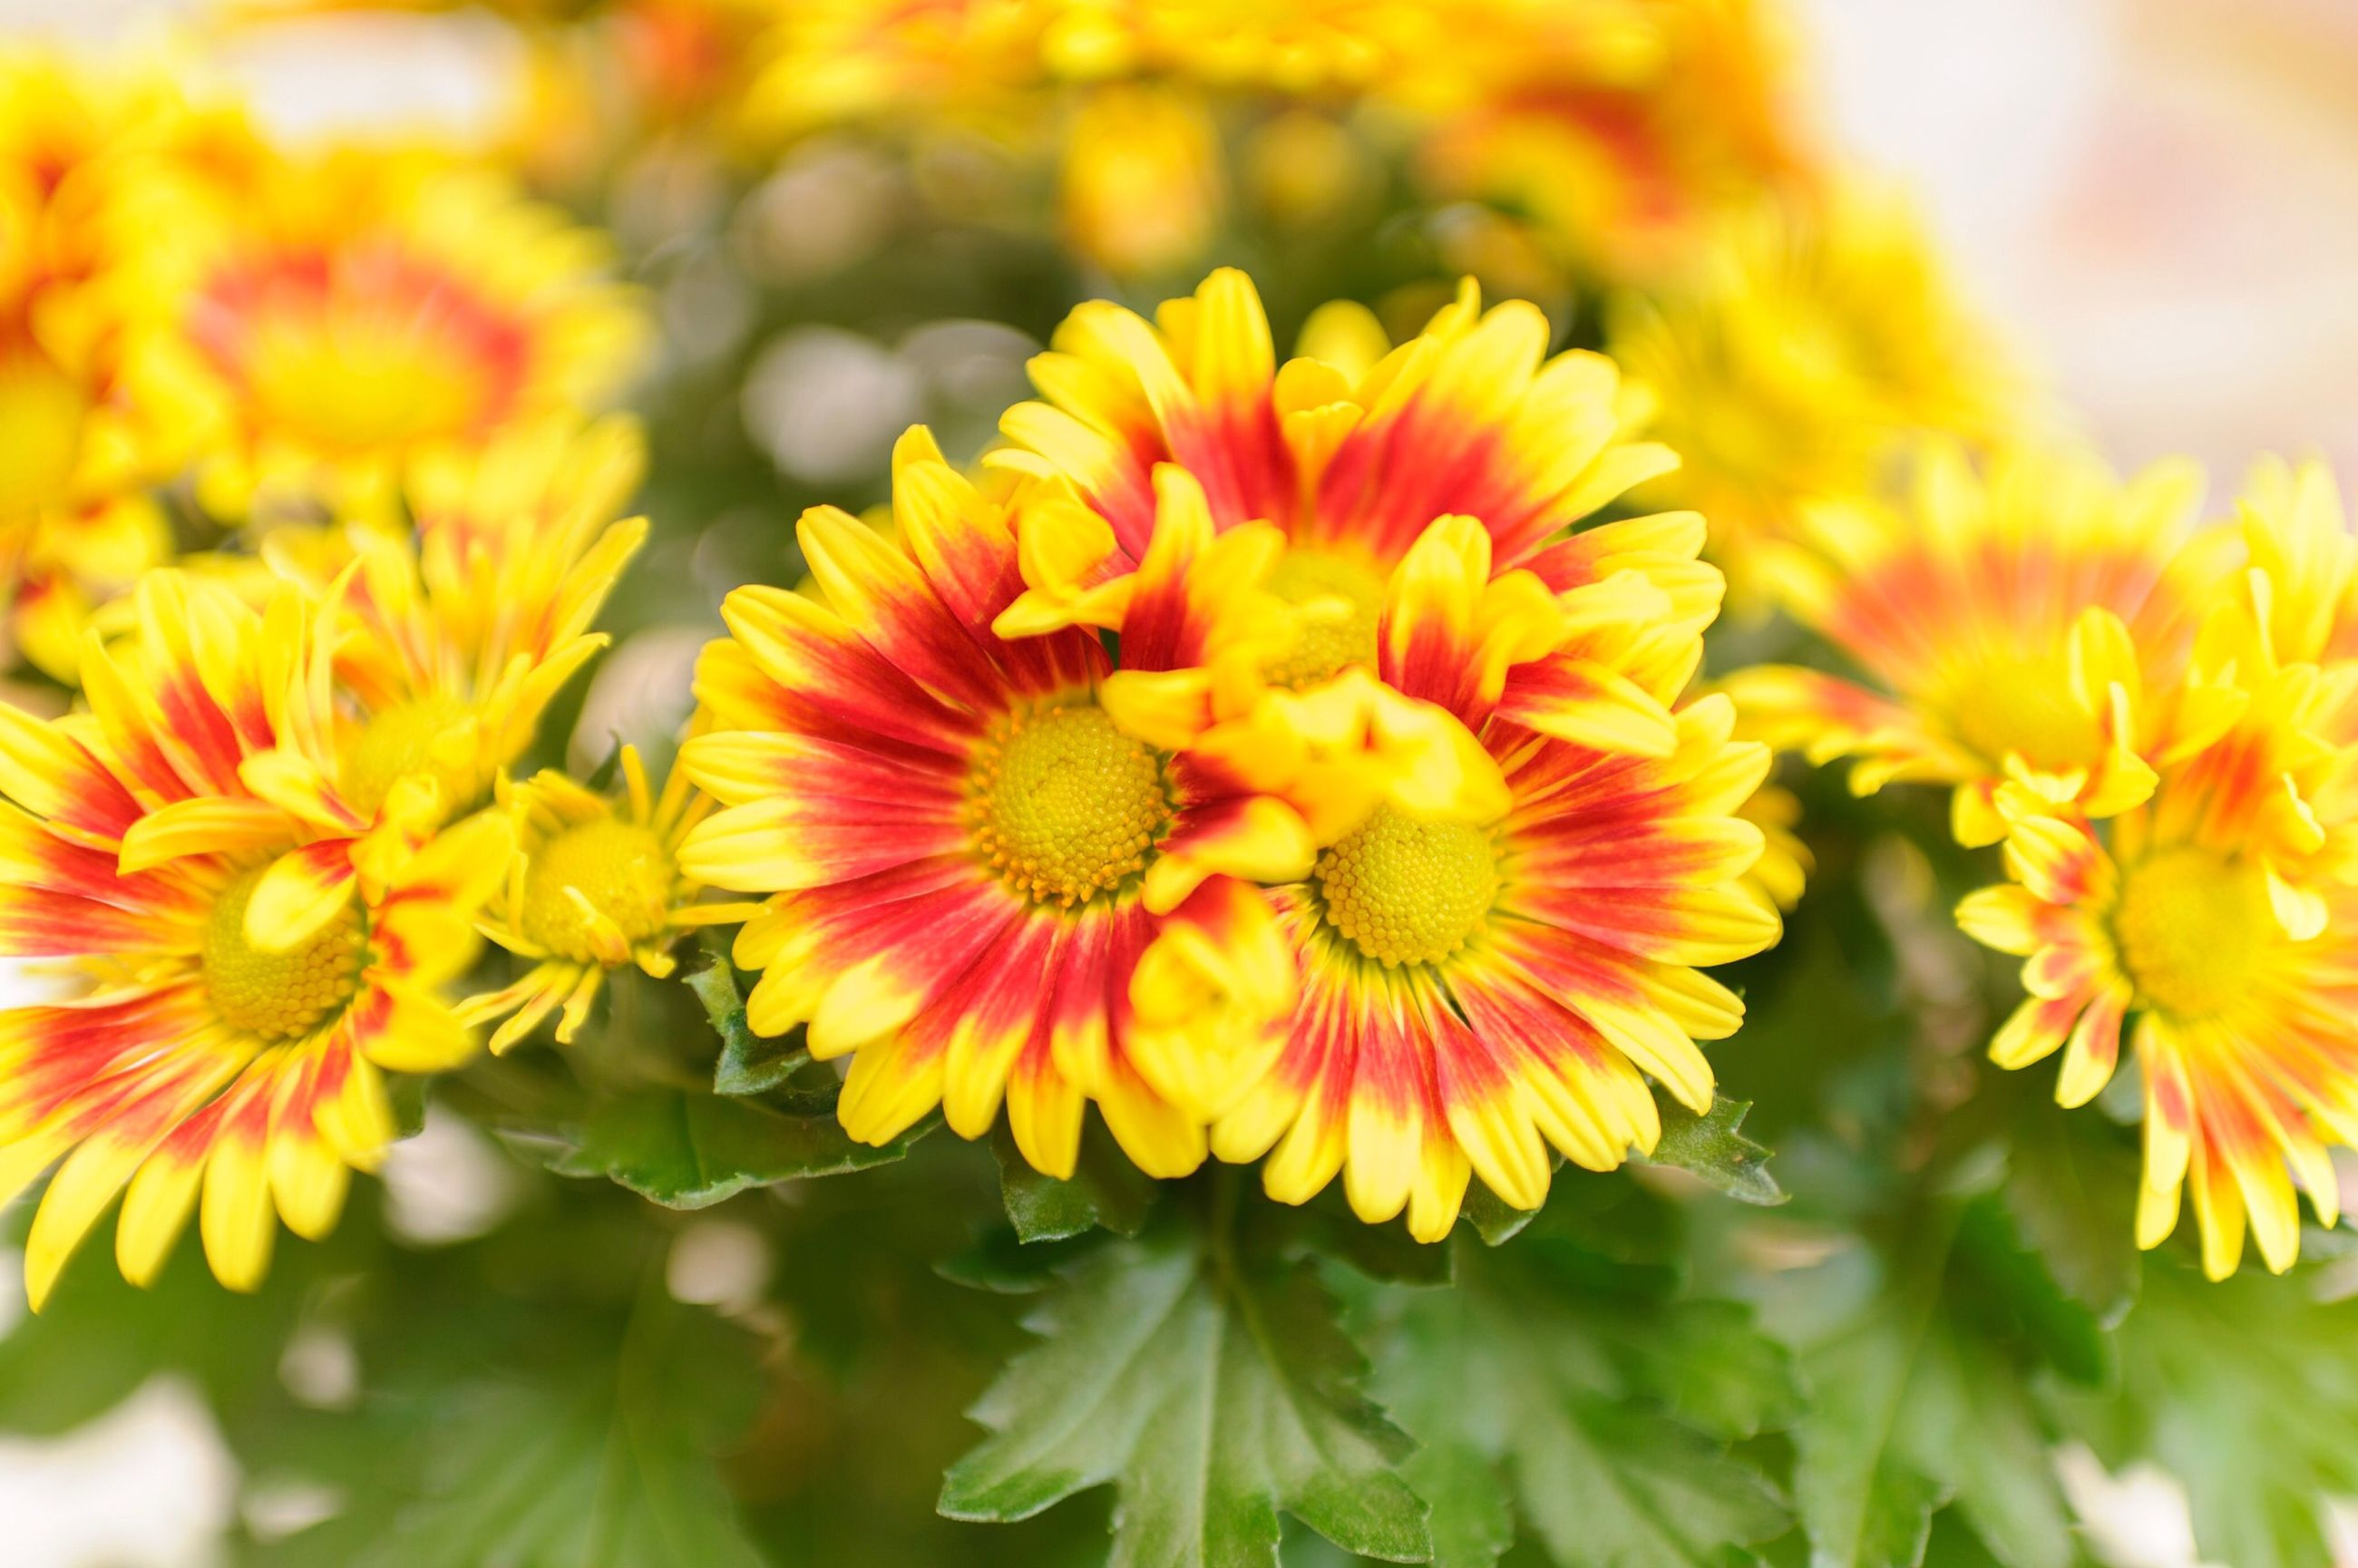 flower, fragility, freshness, beauty in nature, flower head, yellow, nature, petal, growth, plant, no people, outdoors, close-up, blooming, day